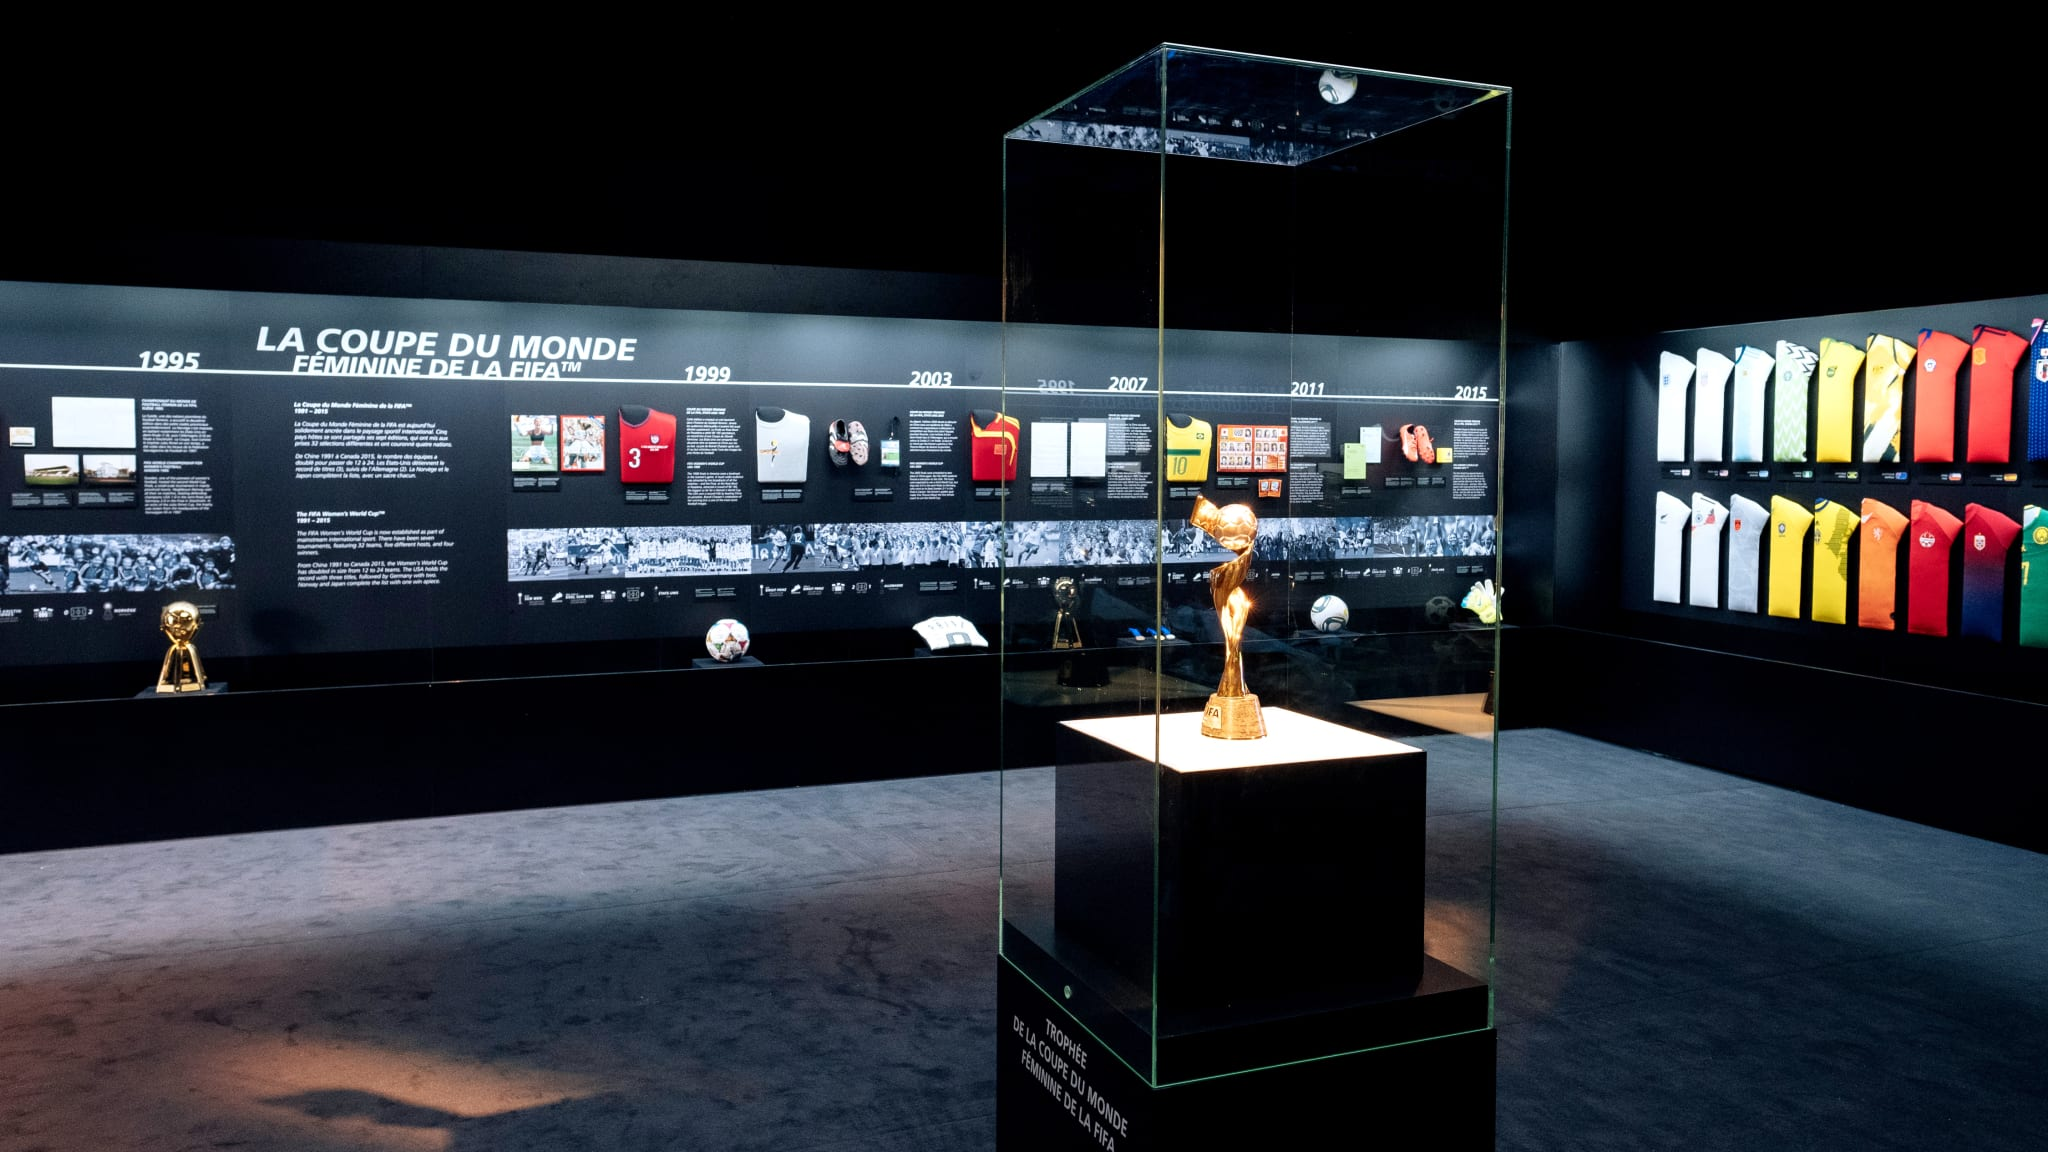 'The Women's Game' exhibition brought to you by the FIFA World Football Museum and Hyundai in Paris